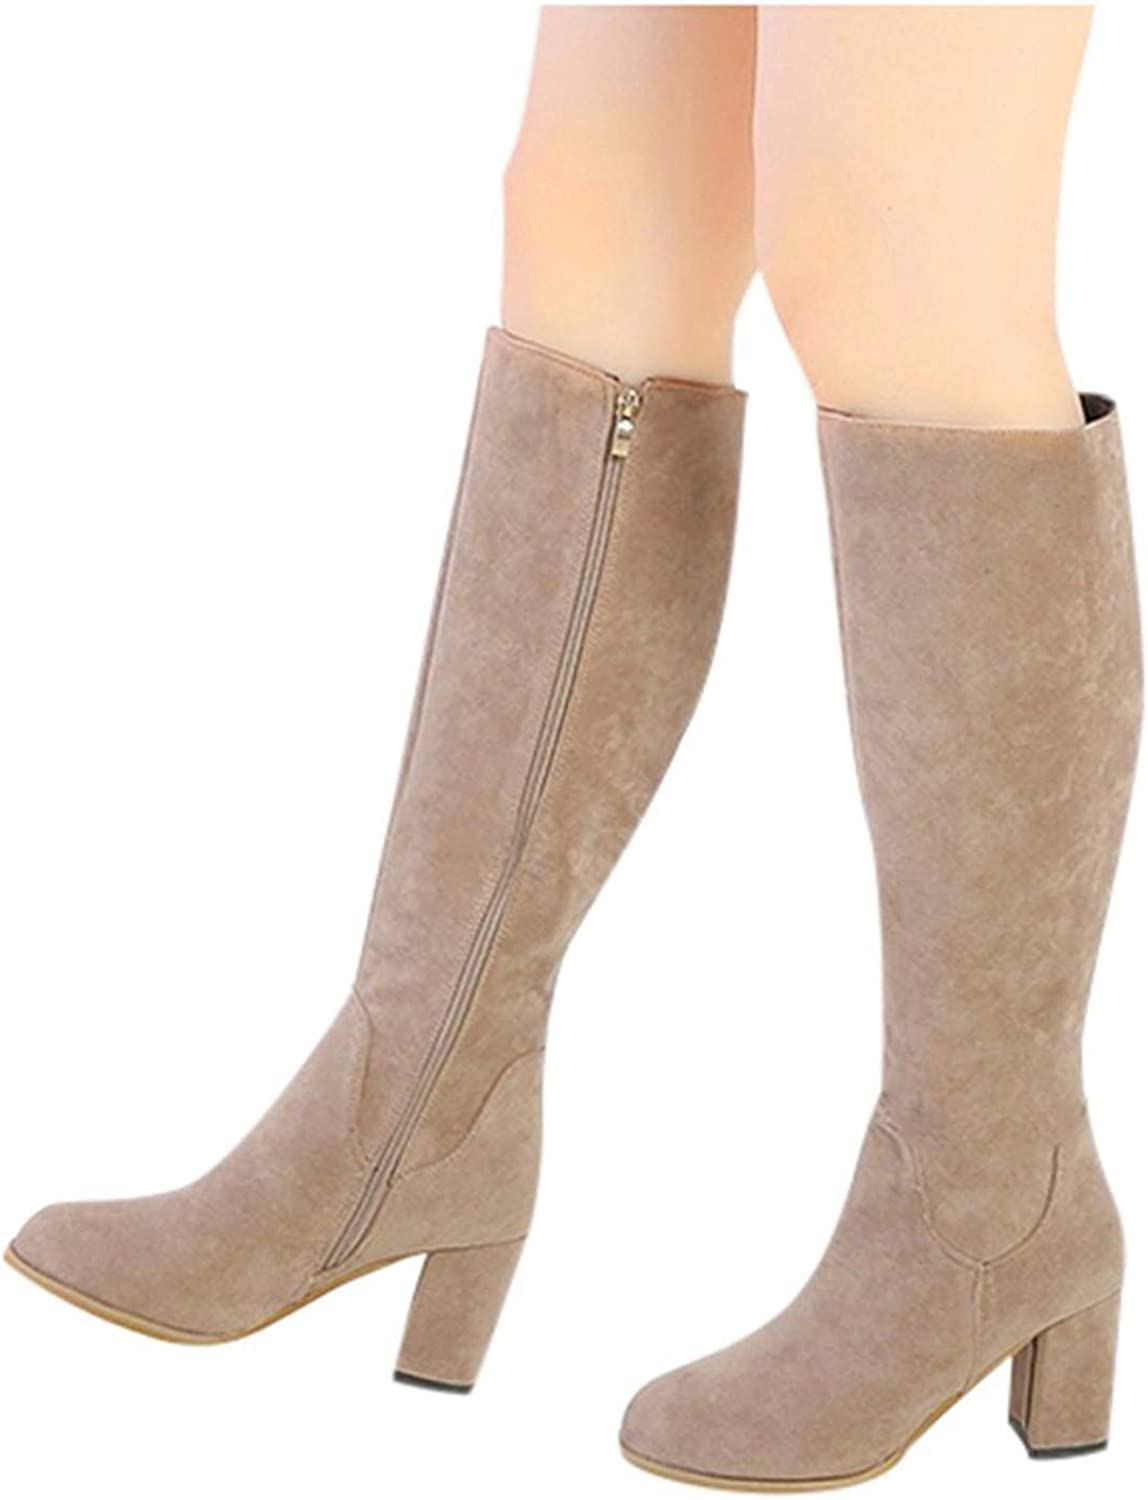 ZYAPCNGN Womens Over Knee Long Warm Popular Ranking TOP16 product Shoe Boots Casual Snow